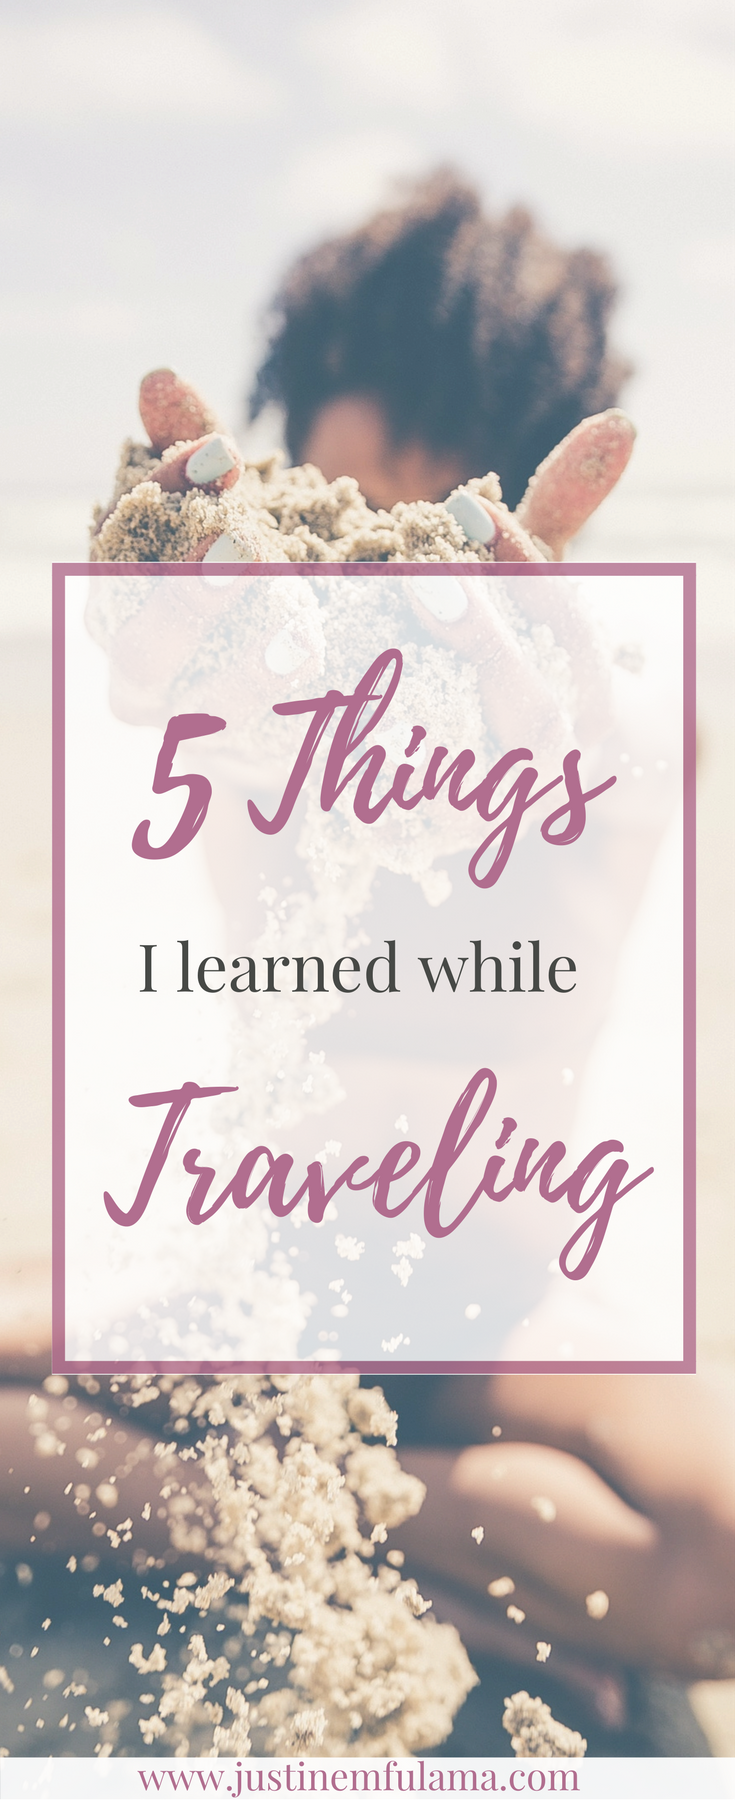 5 Things I learned while Traveling